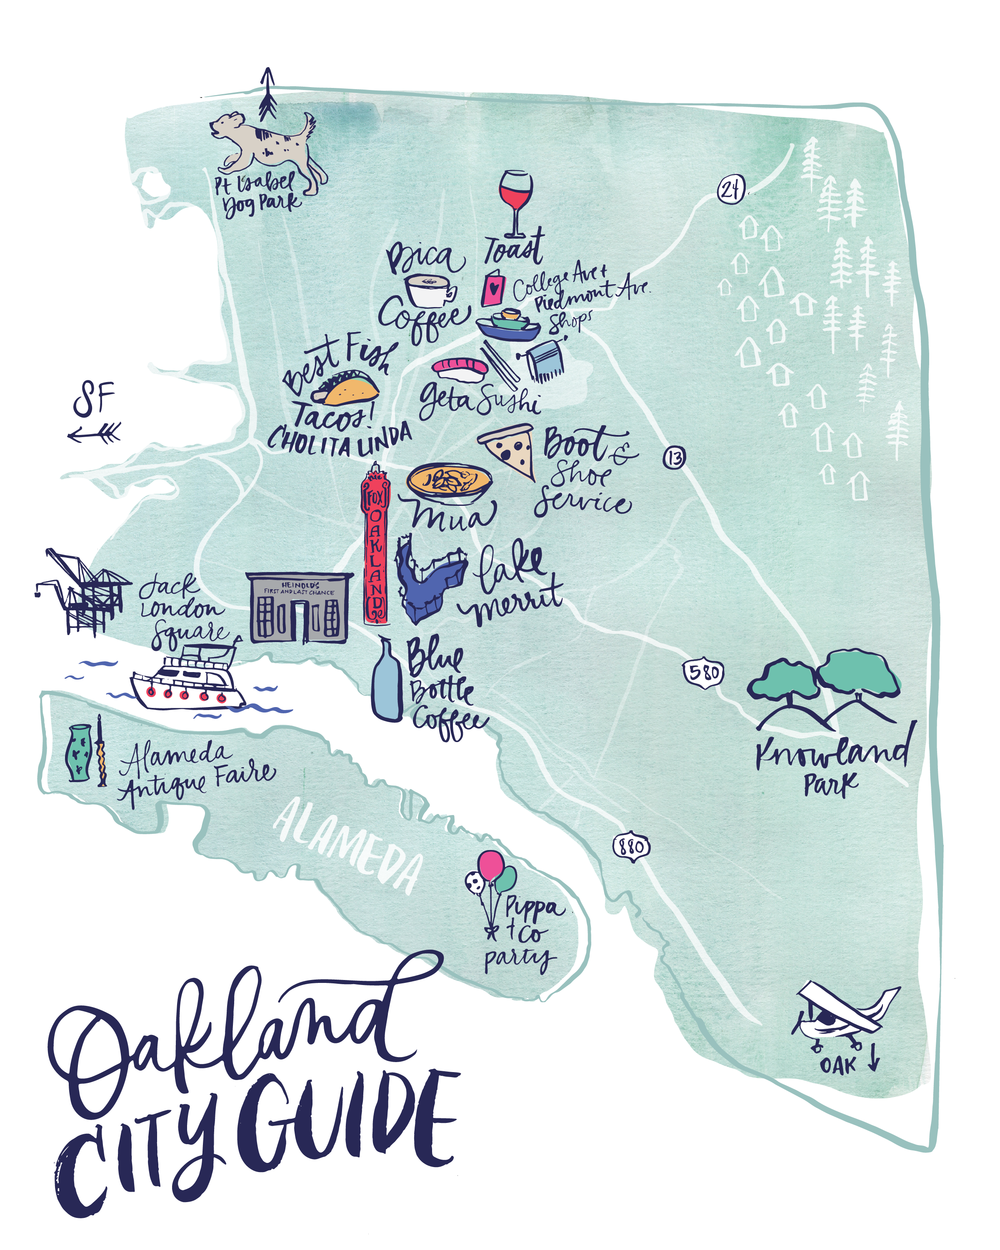 Oakland City Guide-01.png